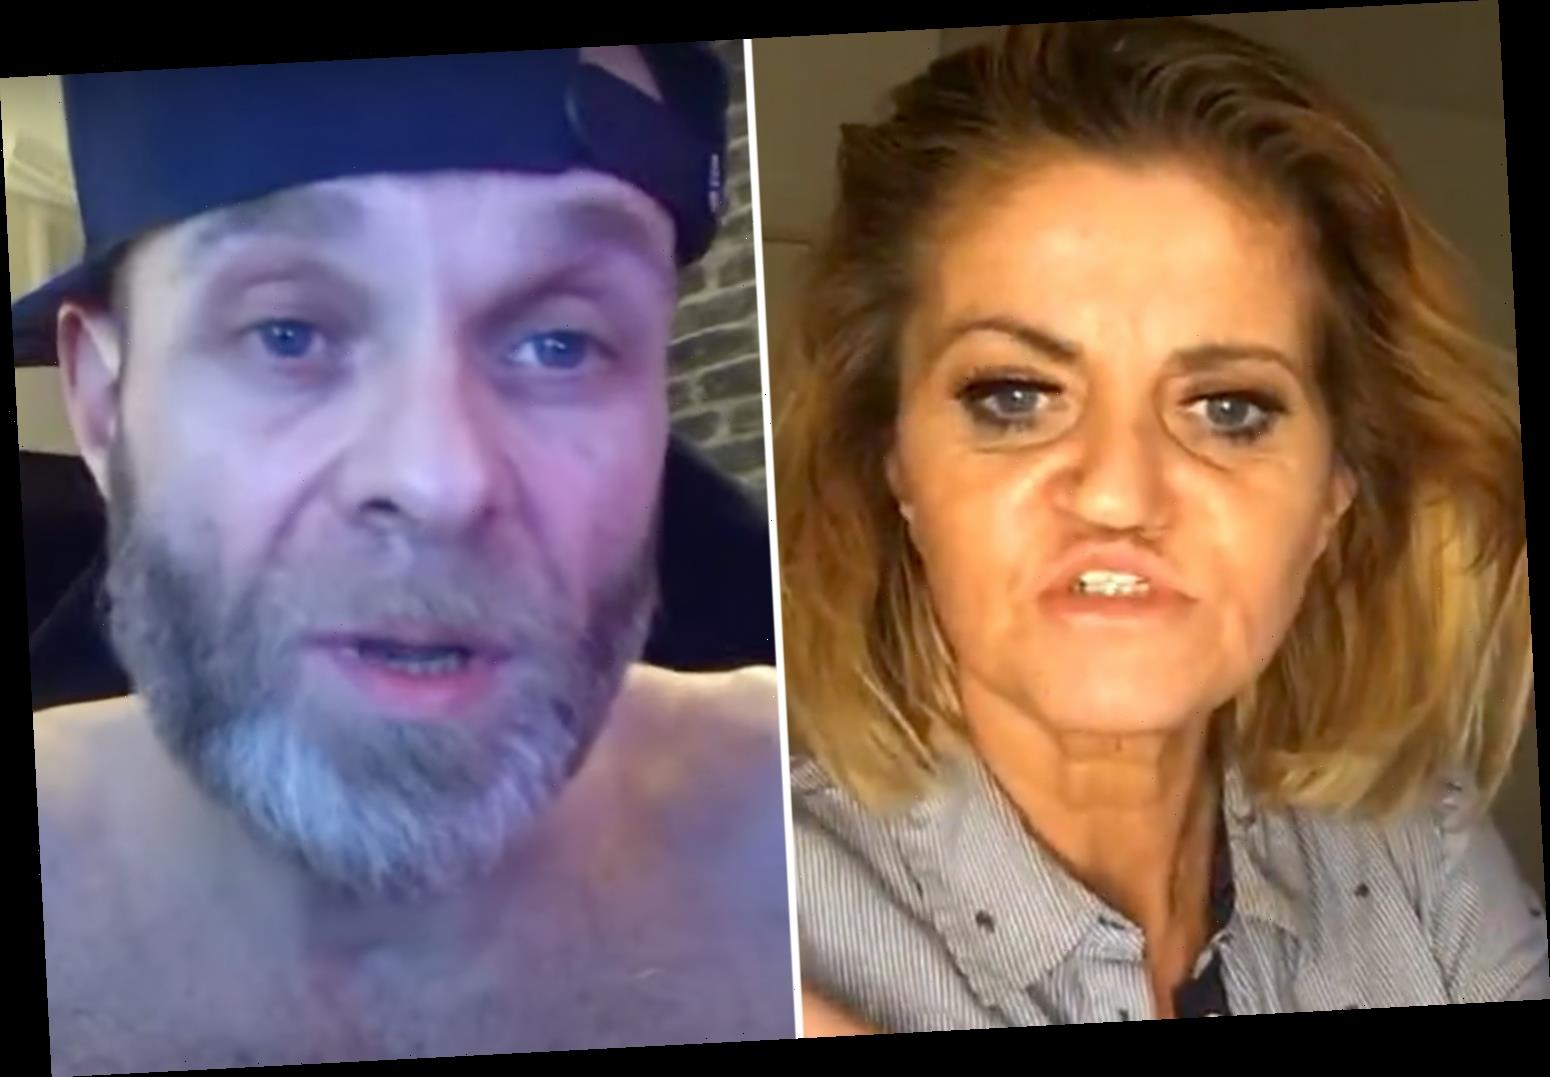 Danniella Westbrook and ex Brian Harvey at war as she brands him a 'paranoid coke freak' and he accuses her of murder